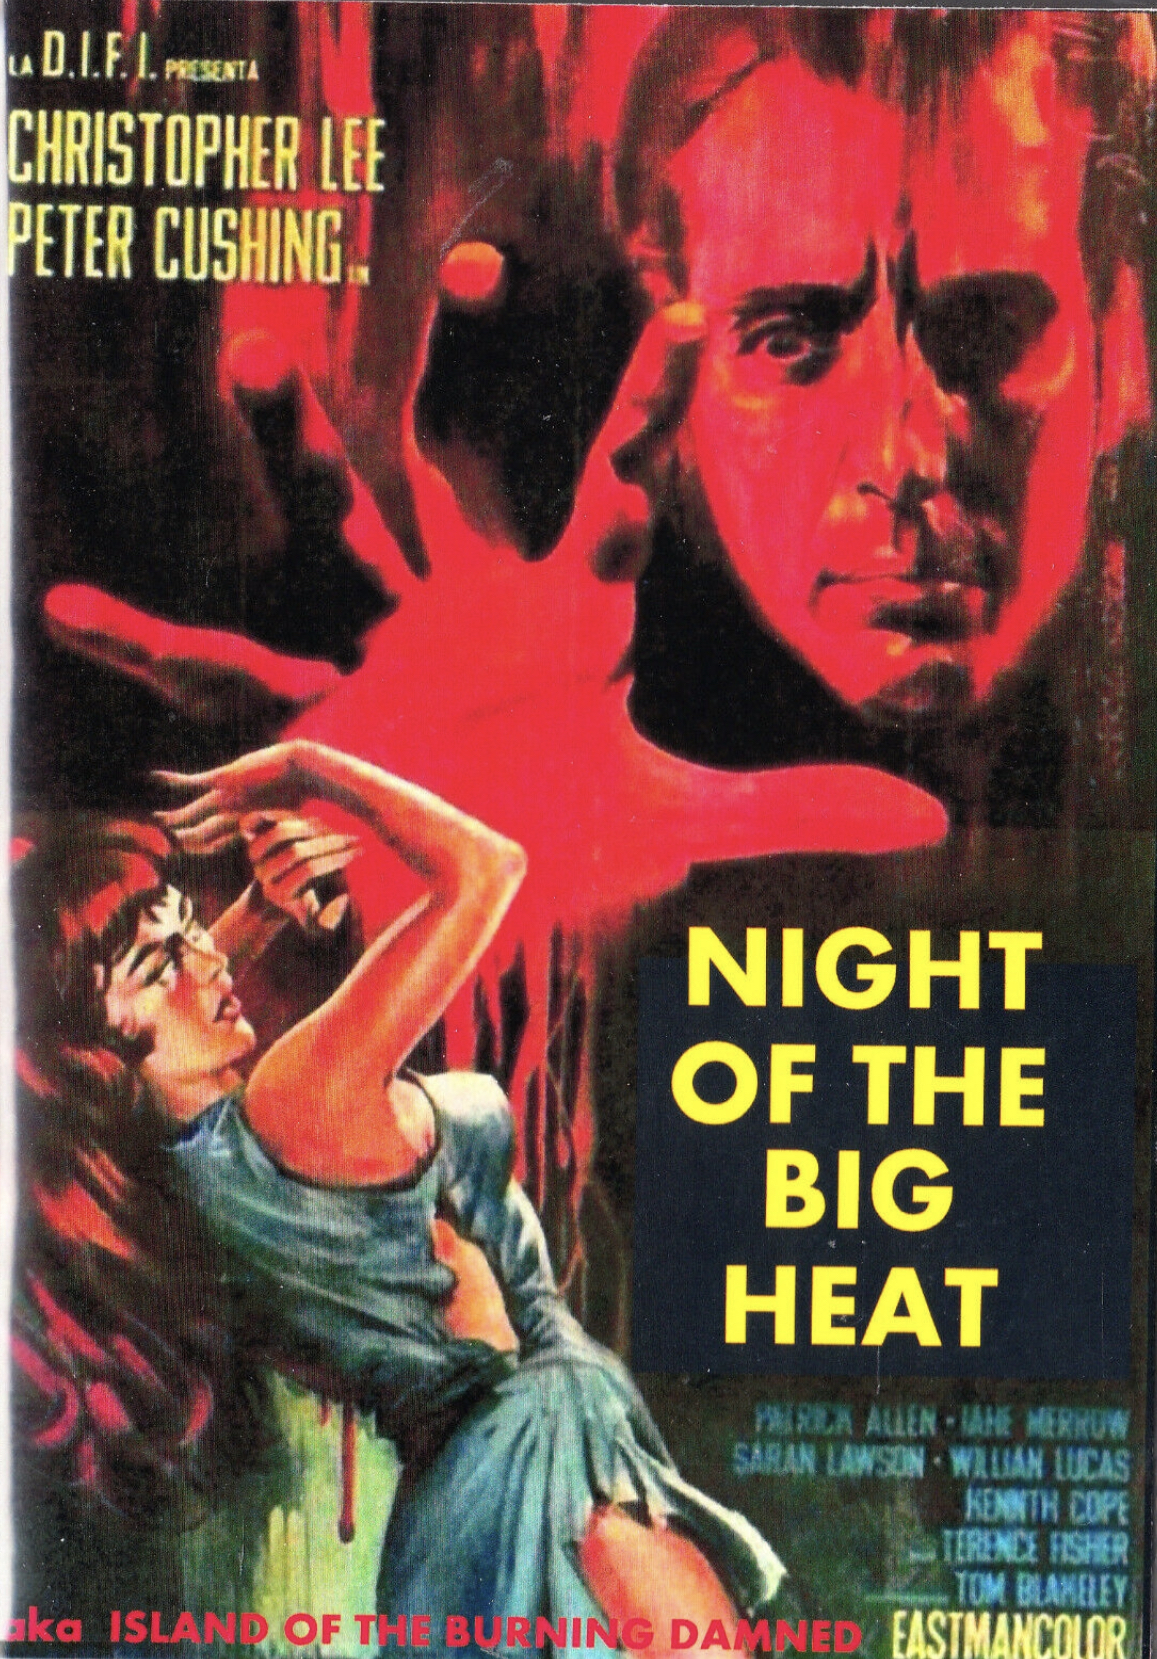 Night of the Big Heat hd on soap2day